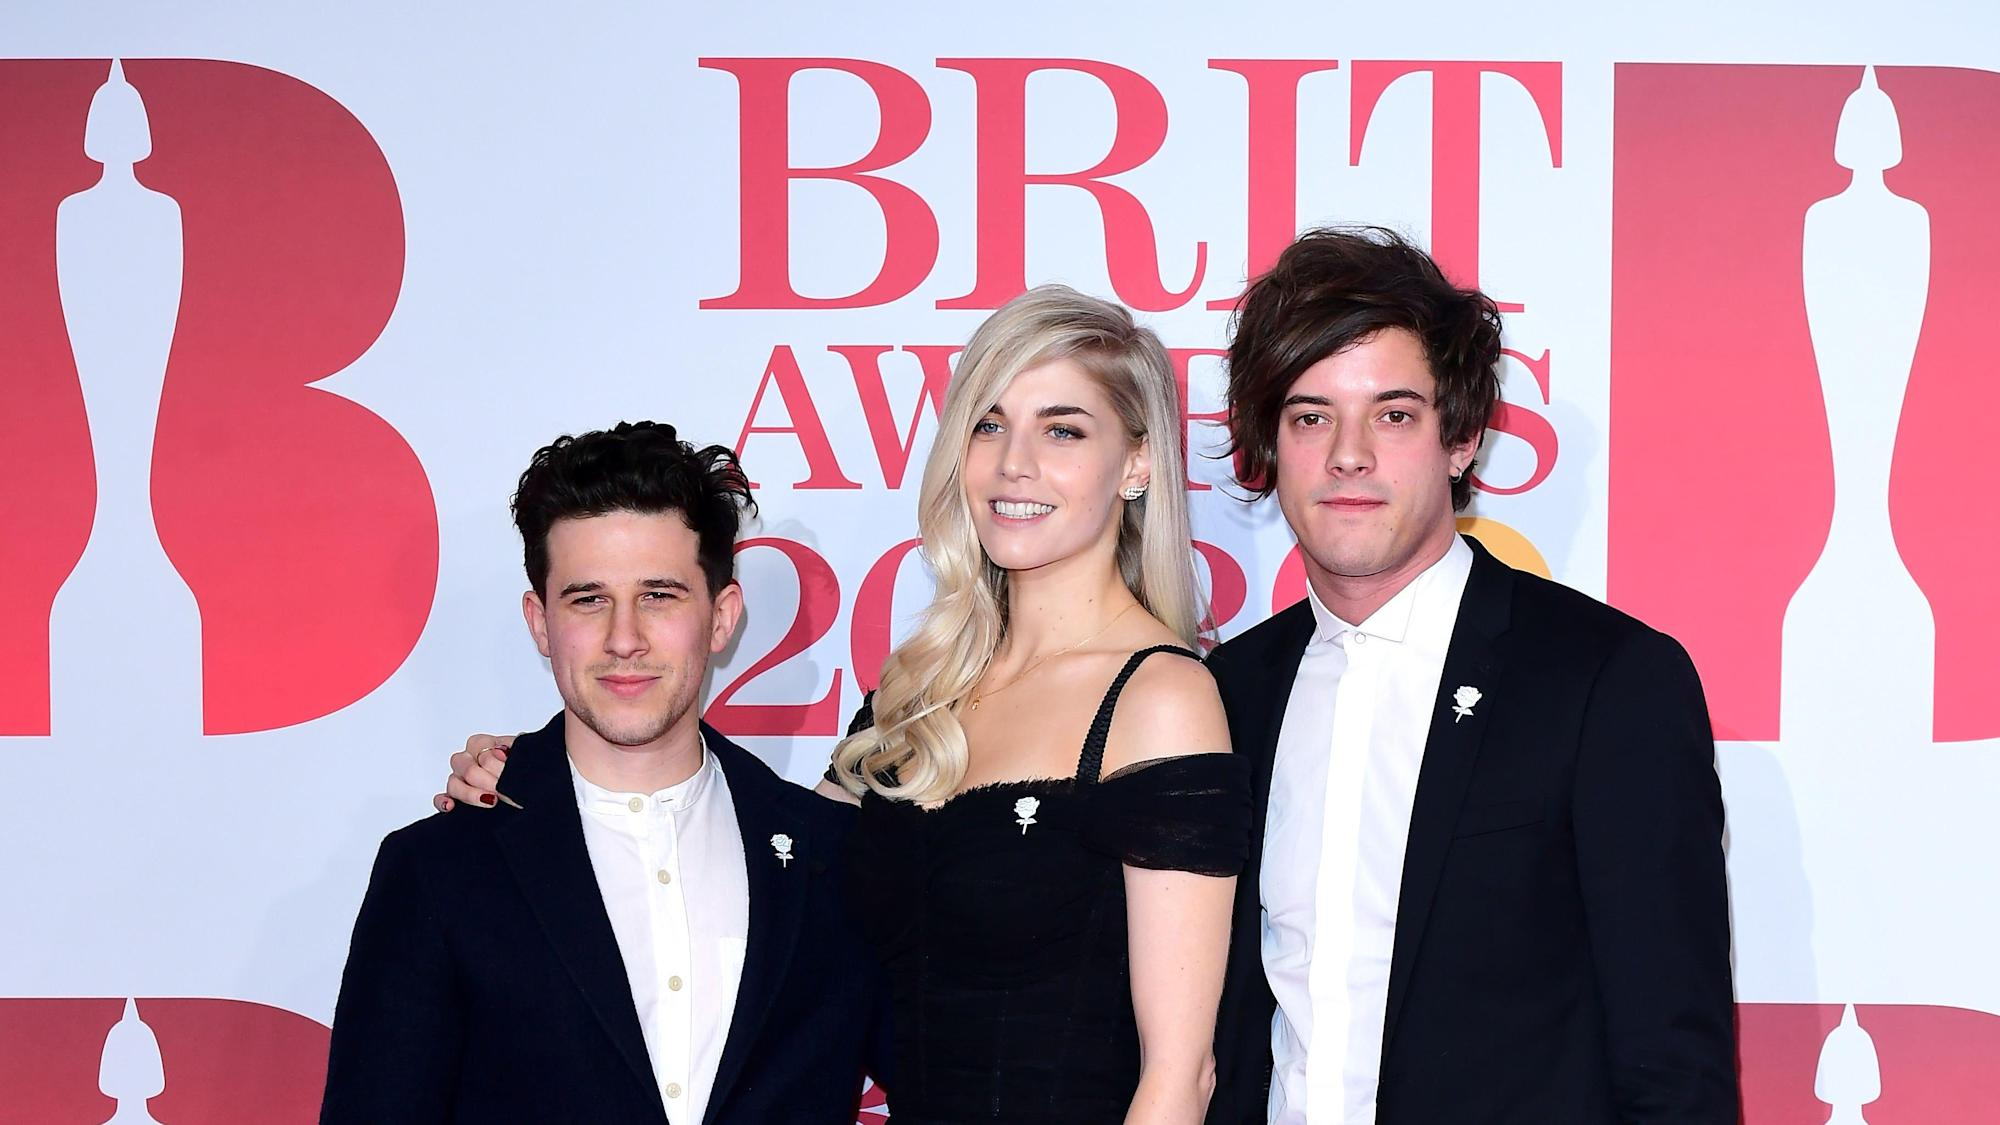 London Grammar pull ahead in chart race for number one